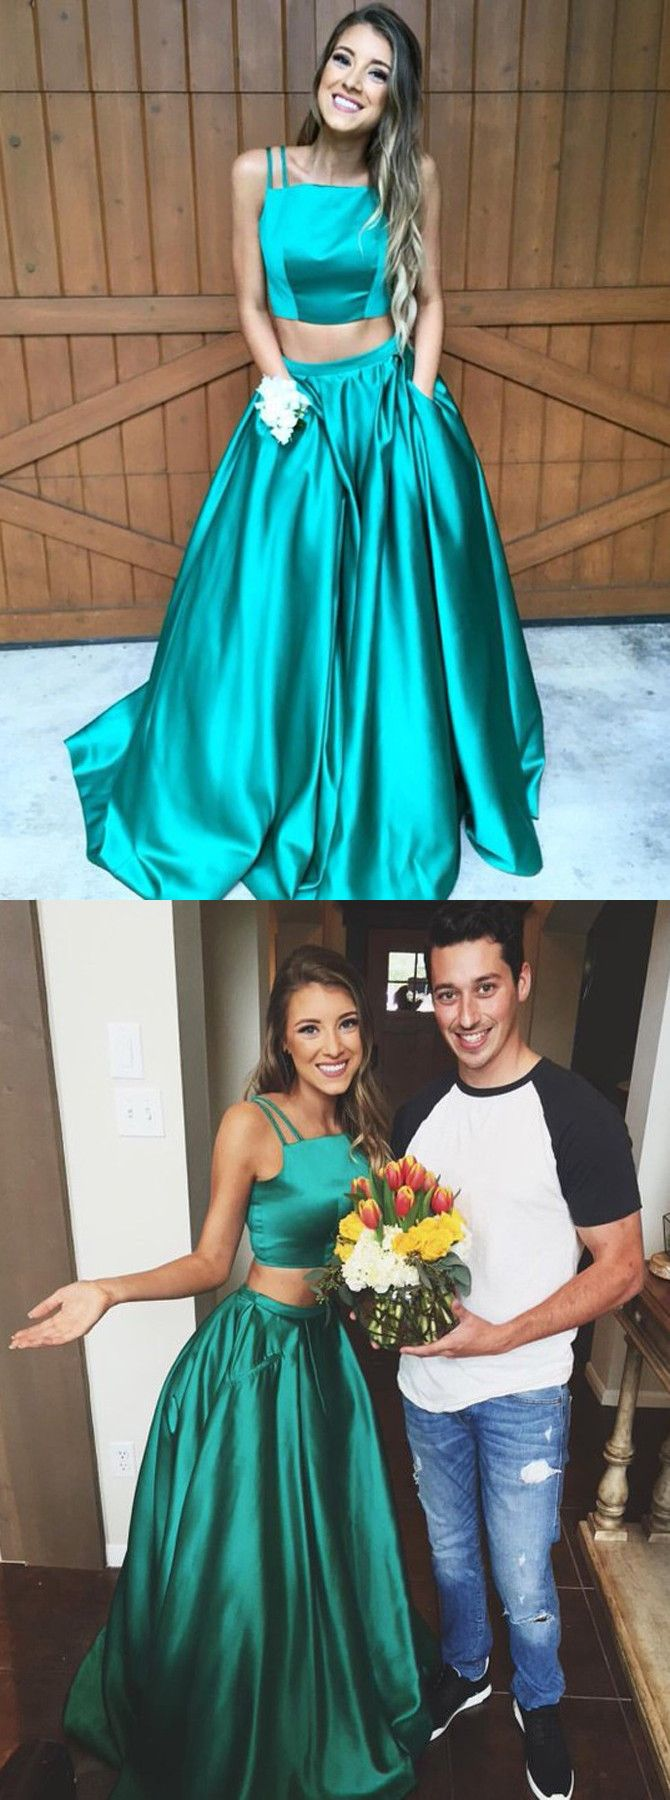 Blue and green prom dress  Pin by Valentina Toledo on ropa   Pinterest  Prom Long prom